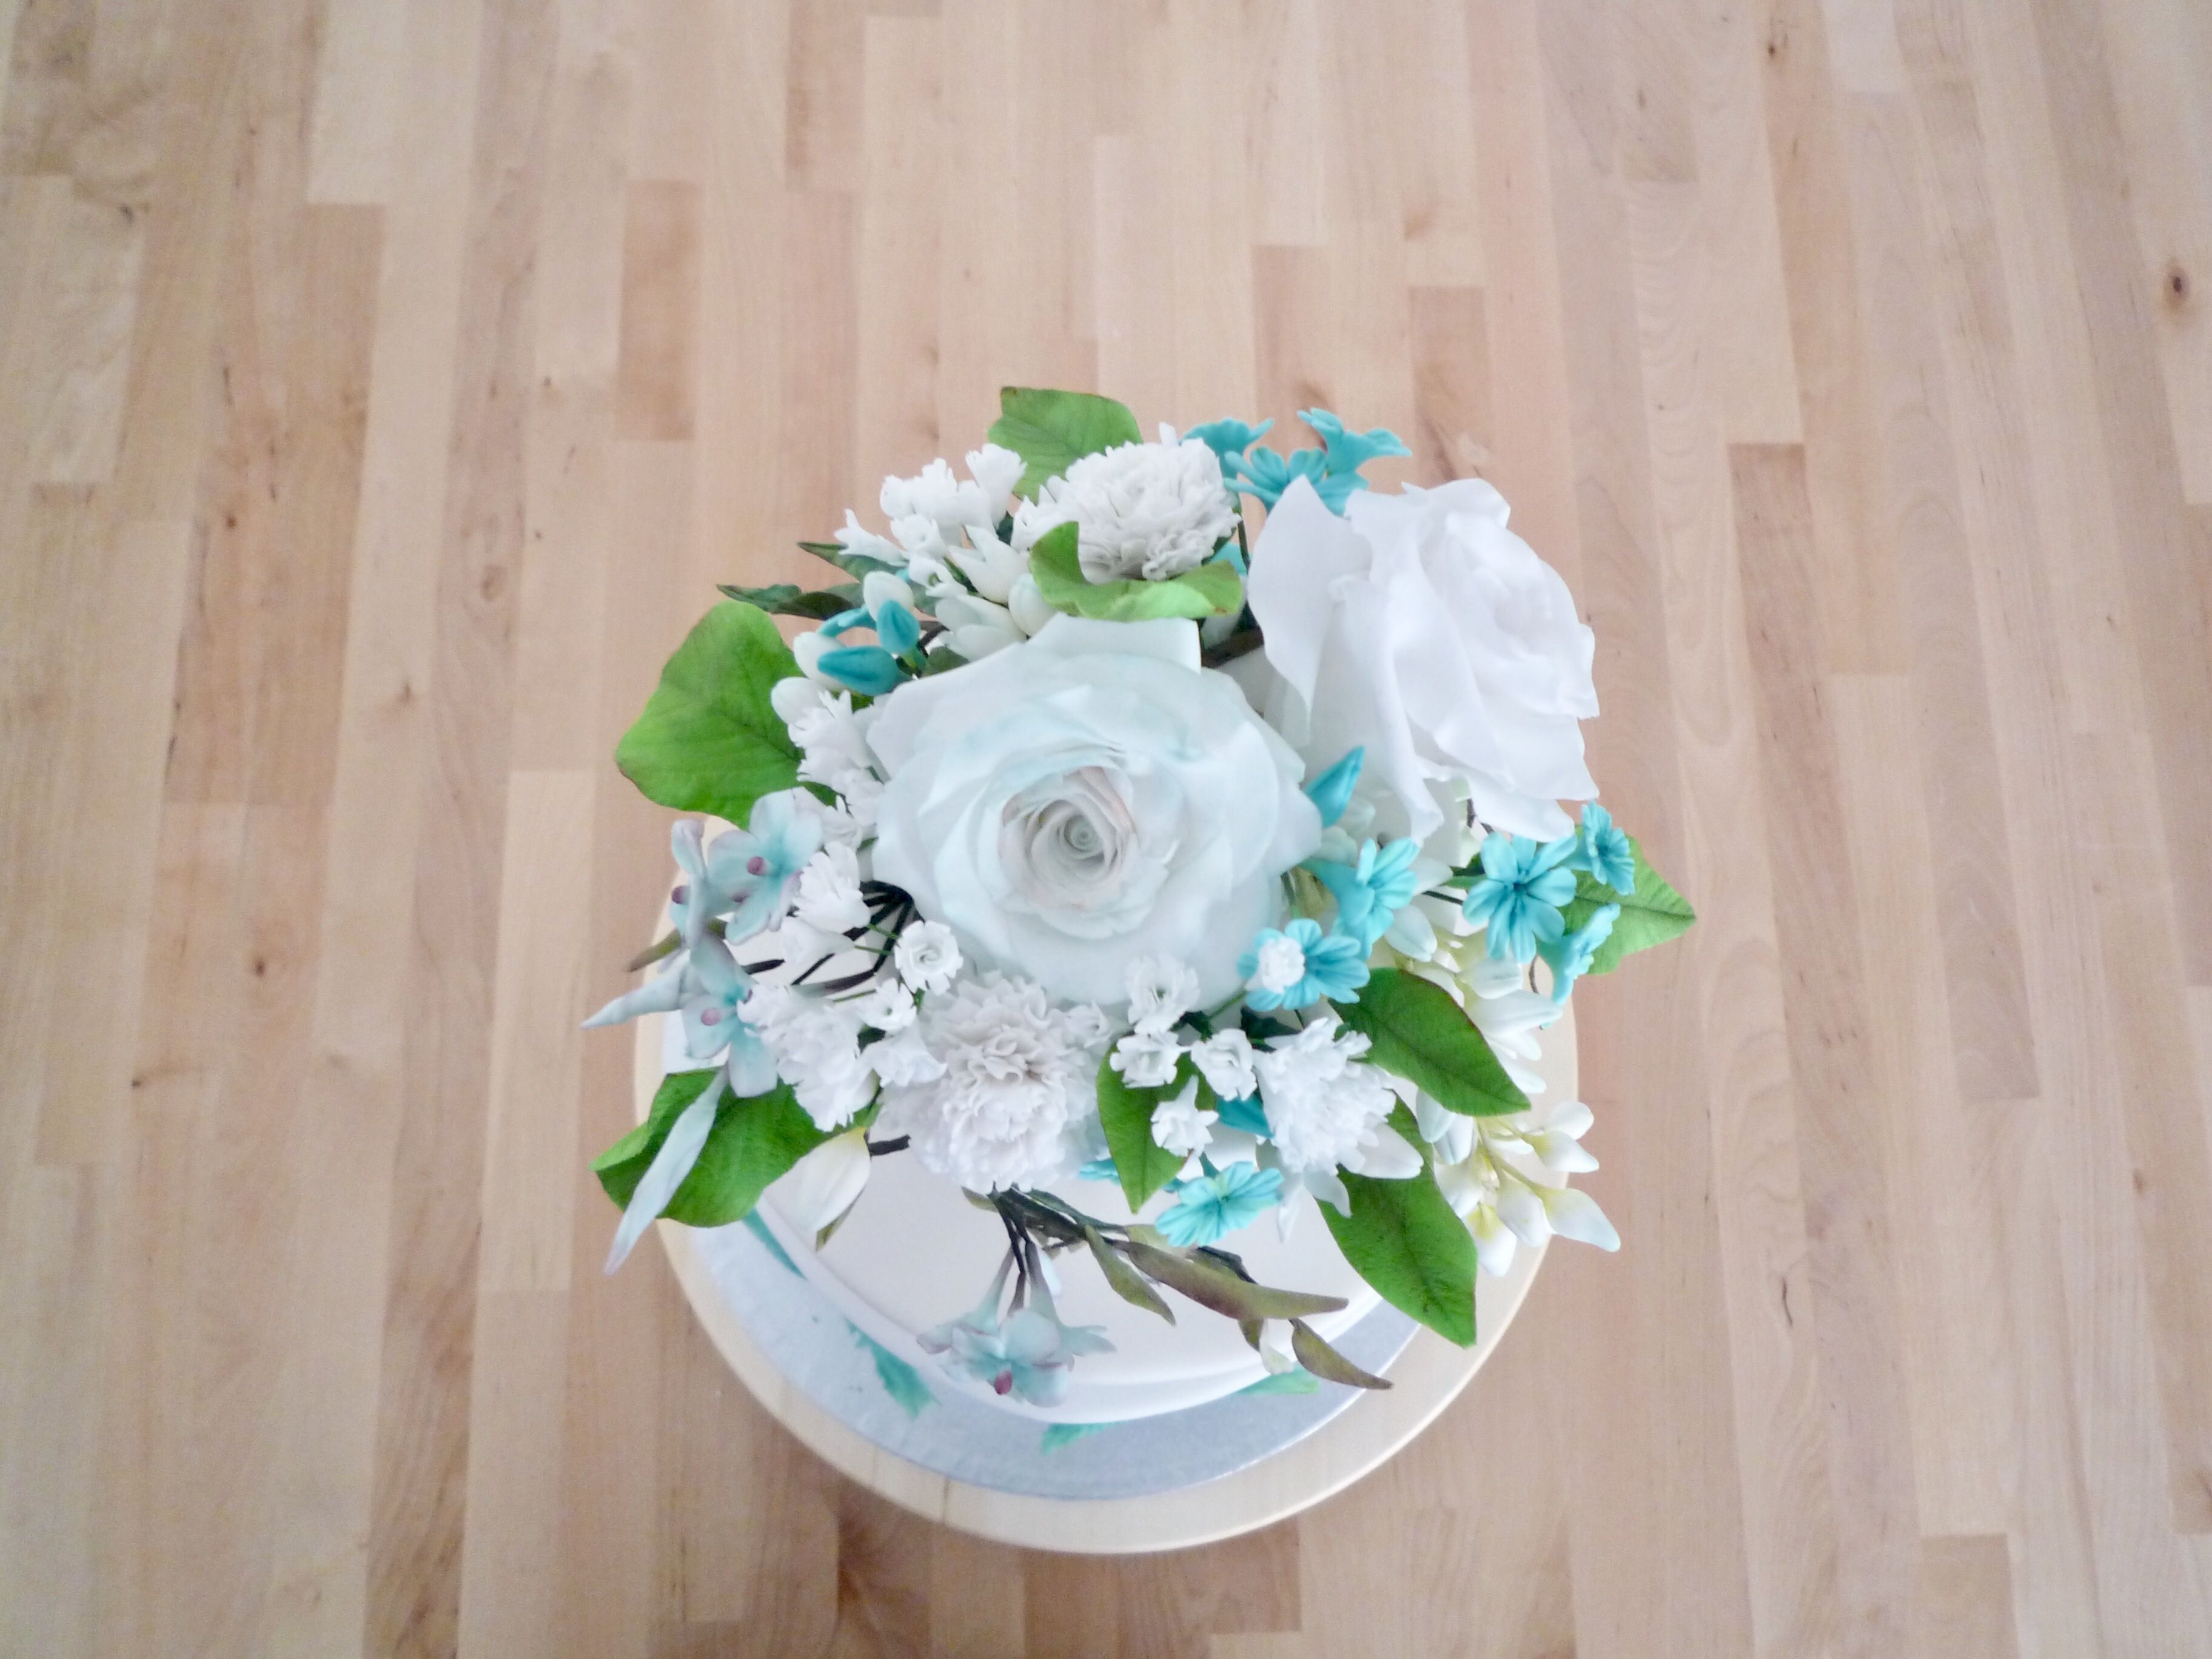 Gumpaste flower white and turquoise sugarpaste blumen wei und gumpaste flower white and turquoise sugarpaste blumen wei und trkis die zuckerei pinterest karlsruhe and events izmirmasajfo